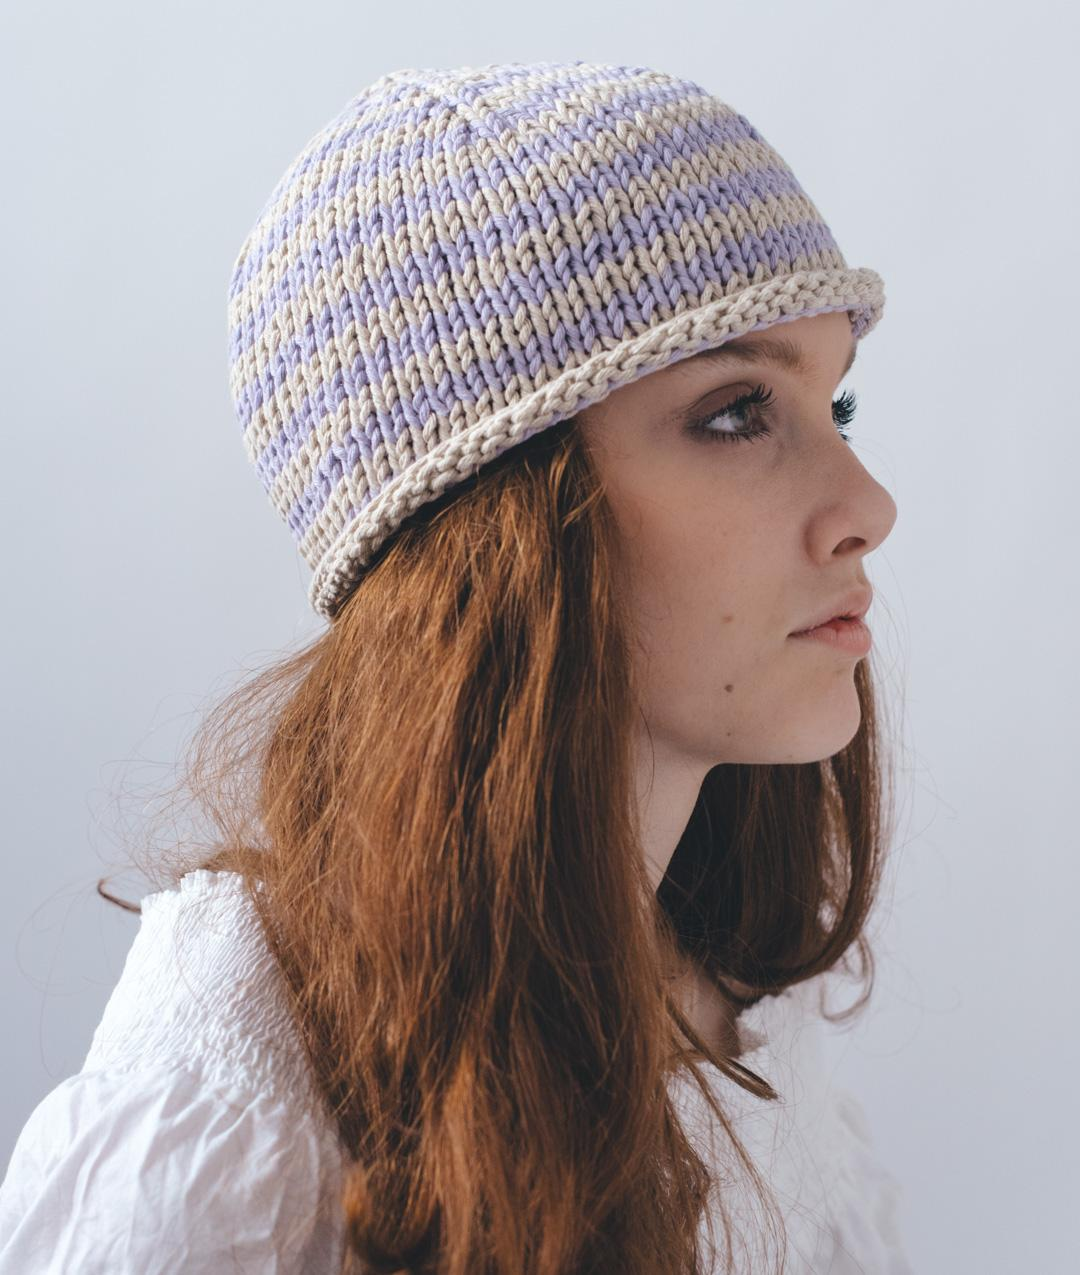 Hats and Beanies - Cotton - Coco Beanie - 1